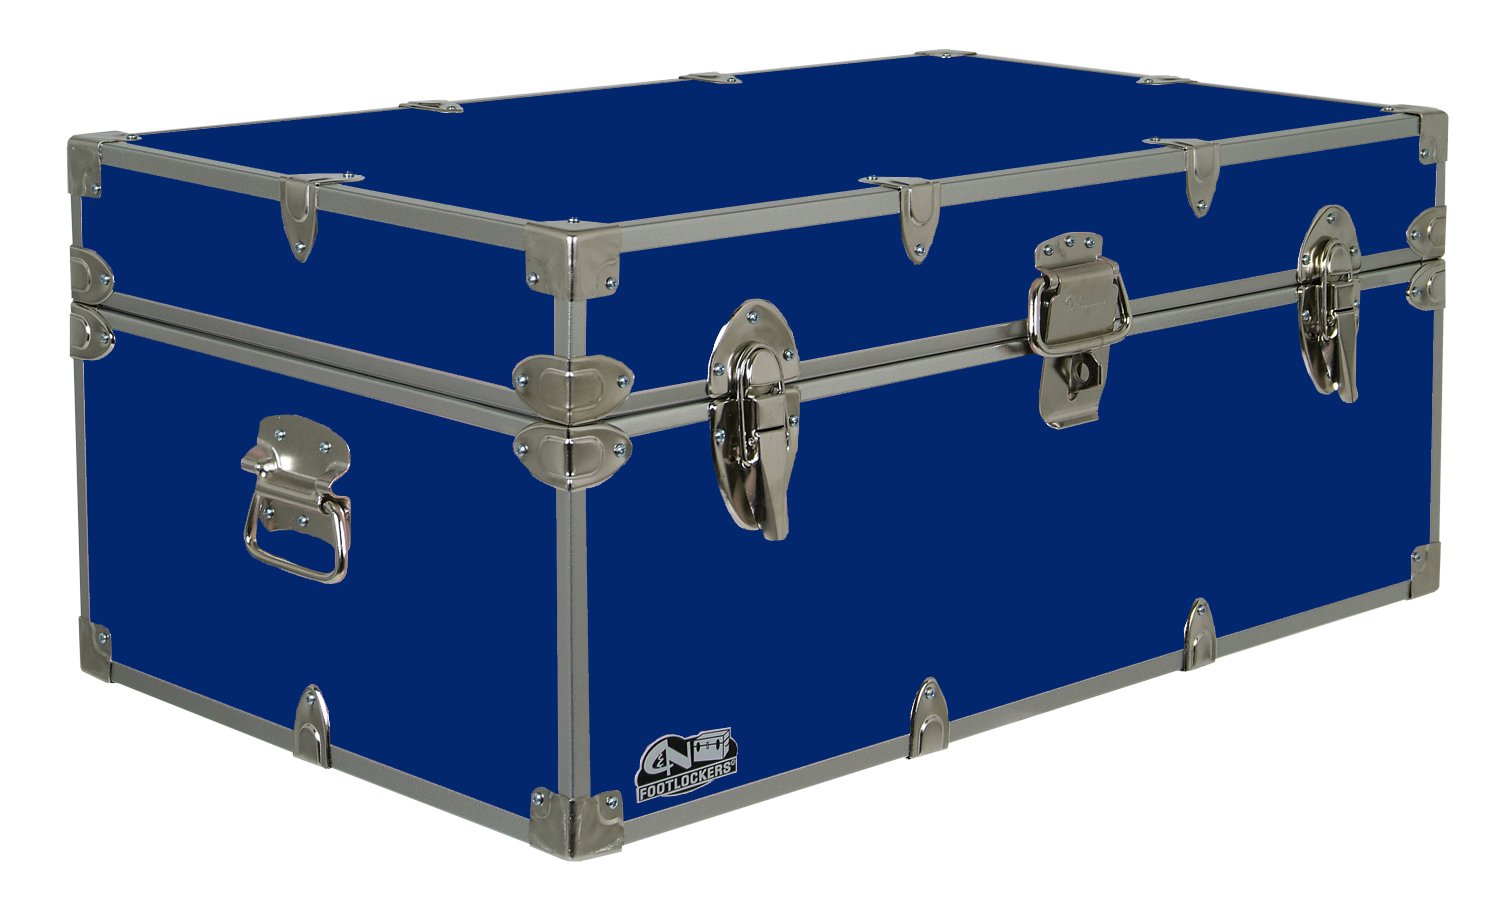 Happy Camper Footlocker Camp Trunk – #CN-1104-v3 – Available in Vibrant Colors – 32 x 18 x 13.5 Inches